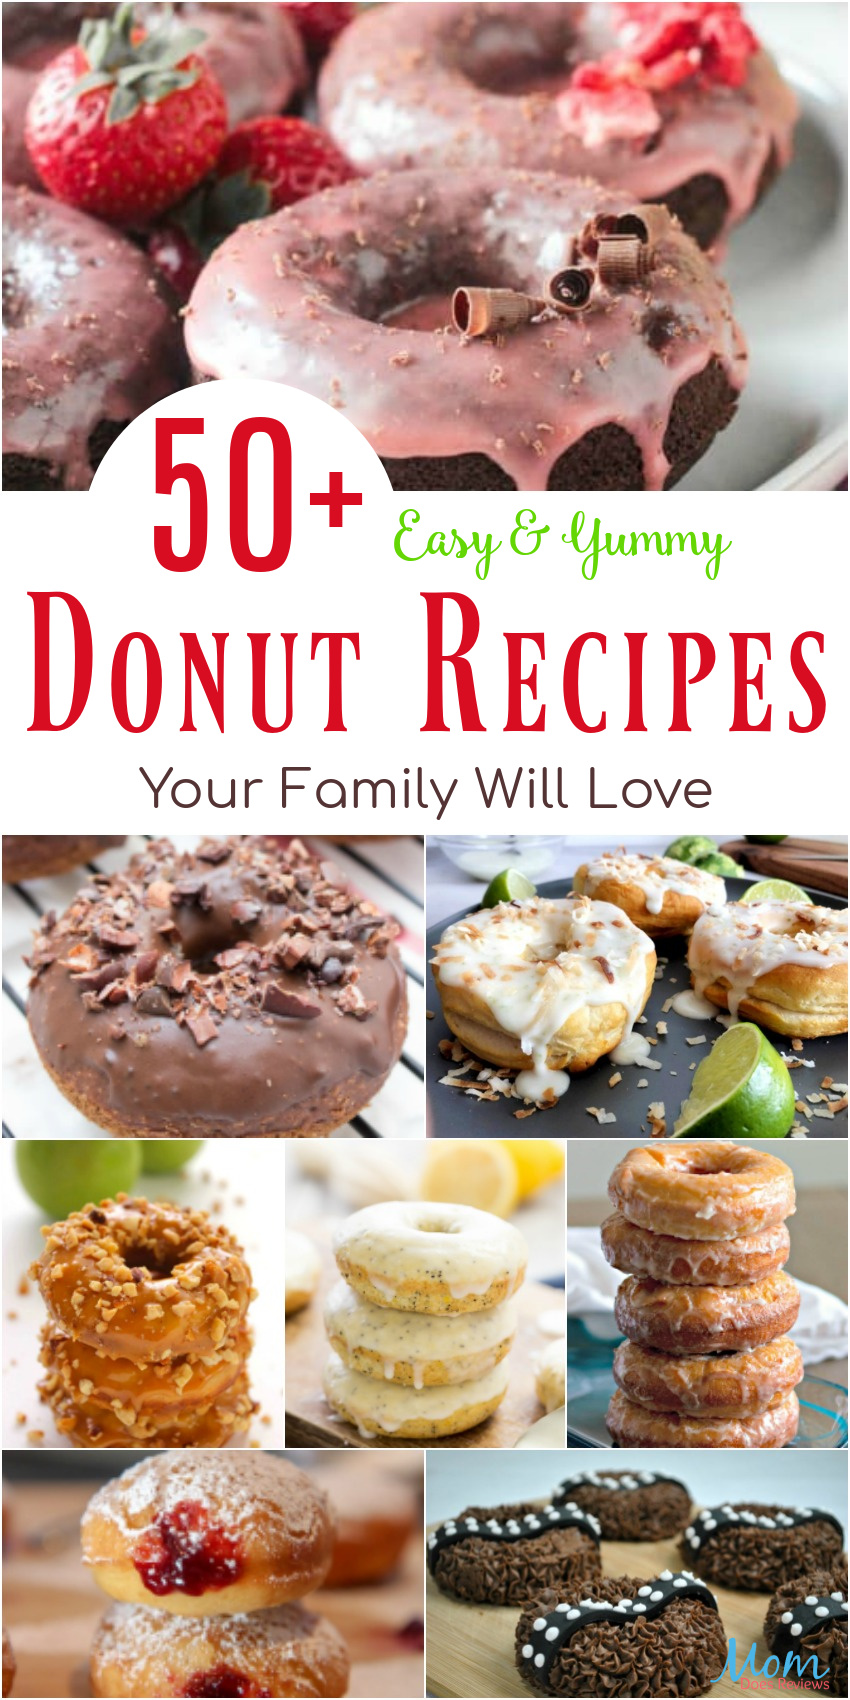 50+ Easy & Yummy Donut Recipes Your Family Will Love #recipes #foodie #donuts #breakfast #sweets